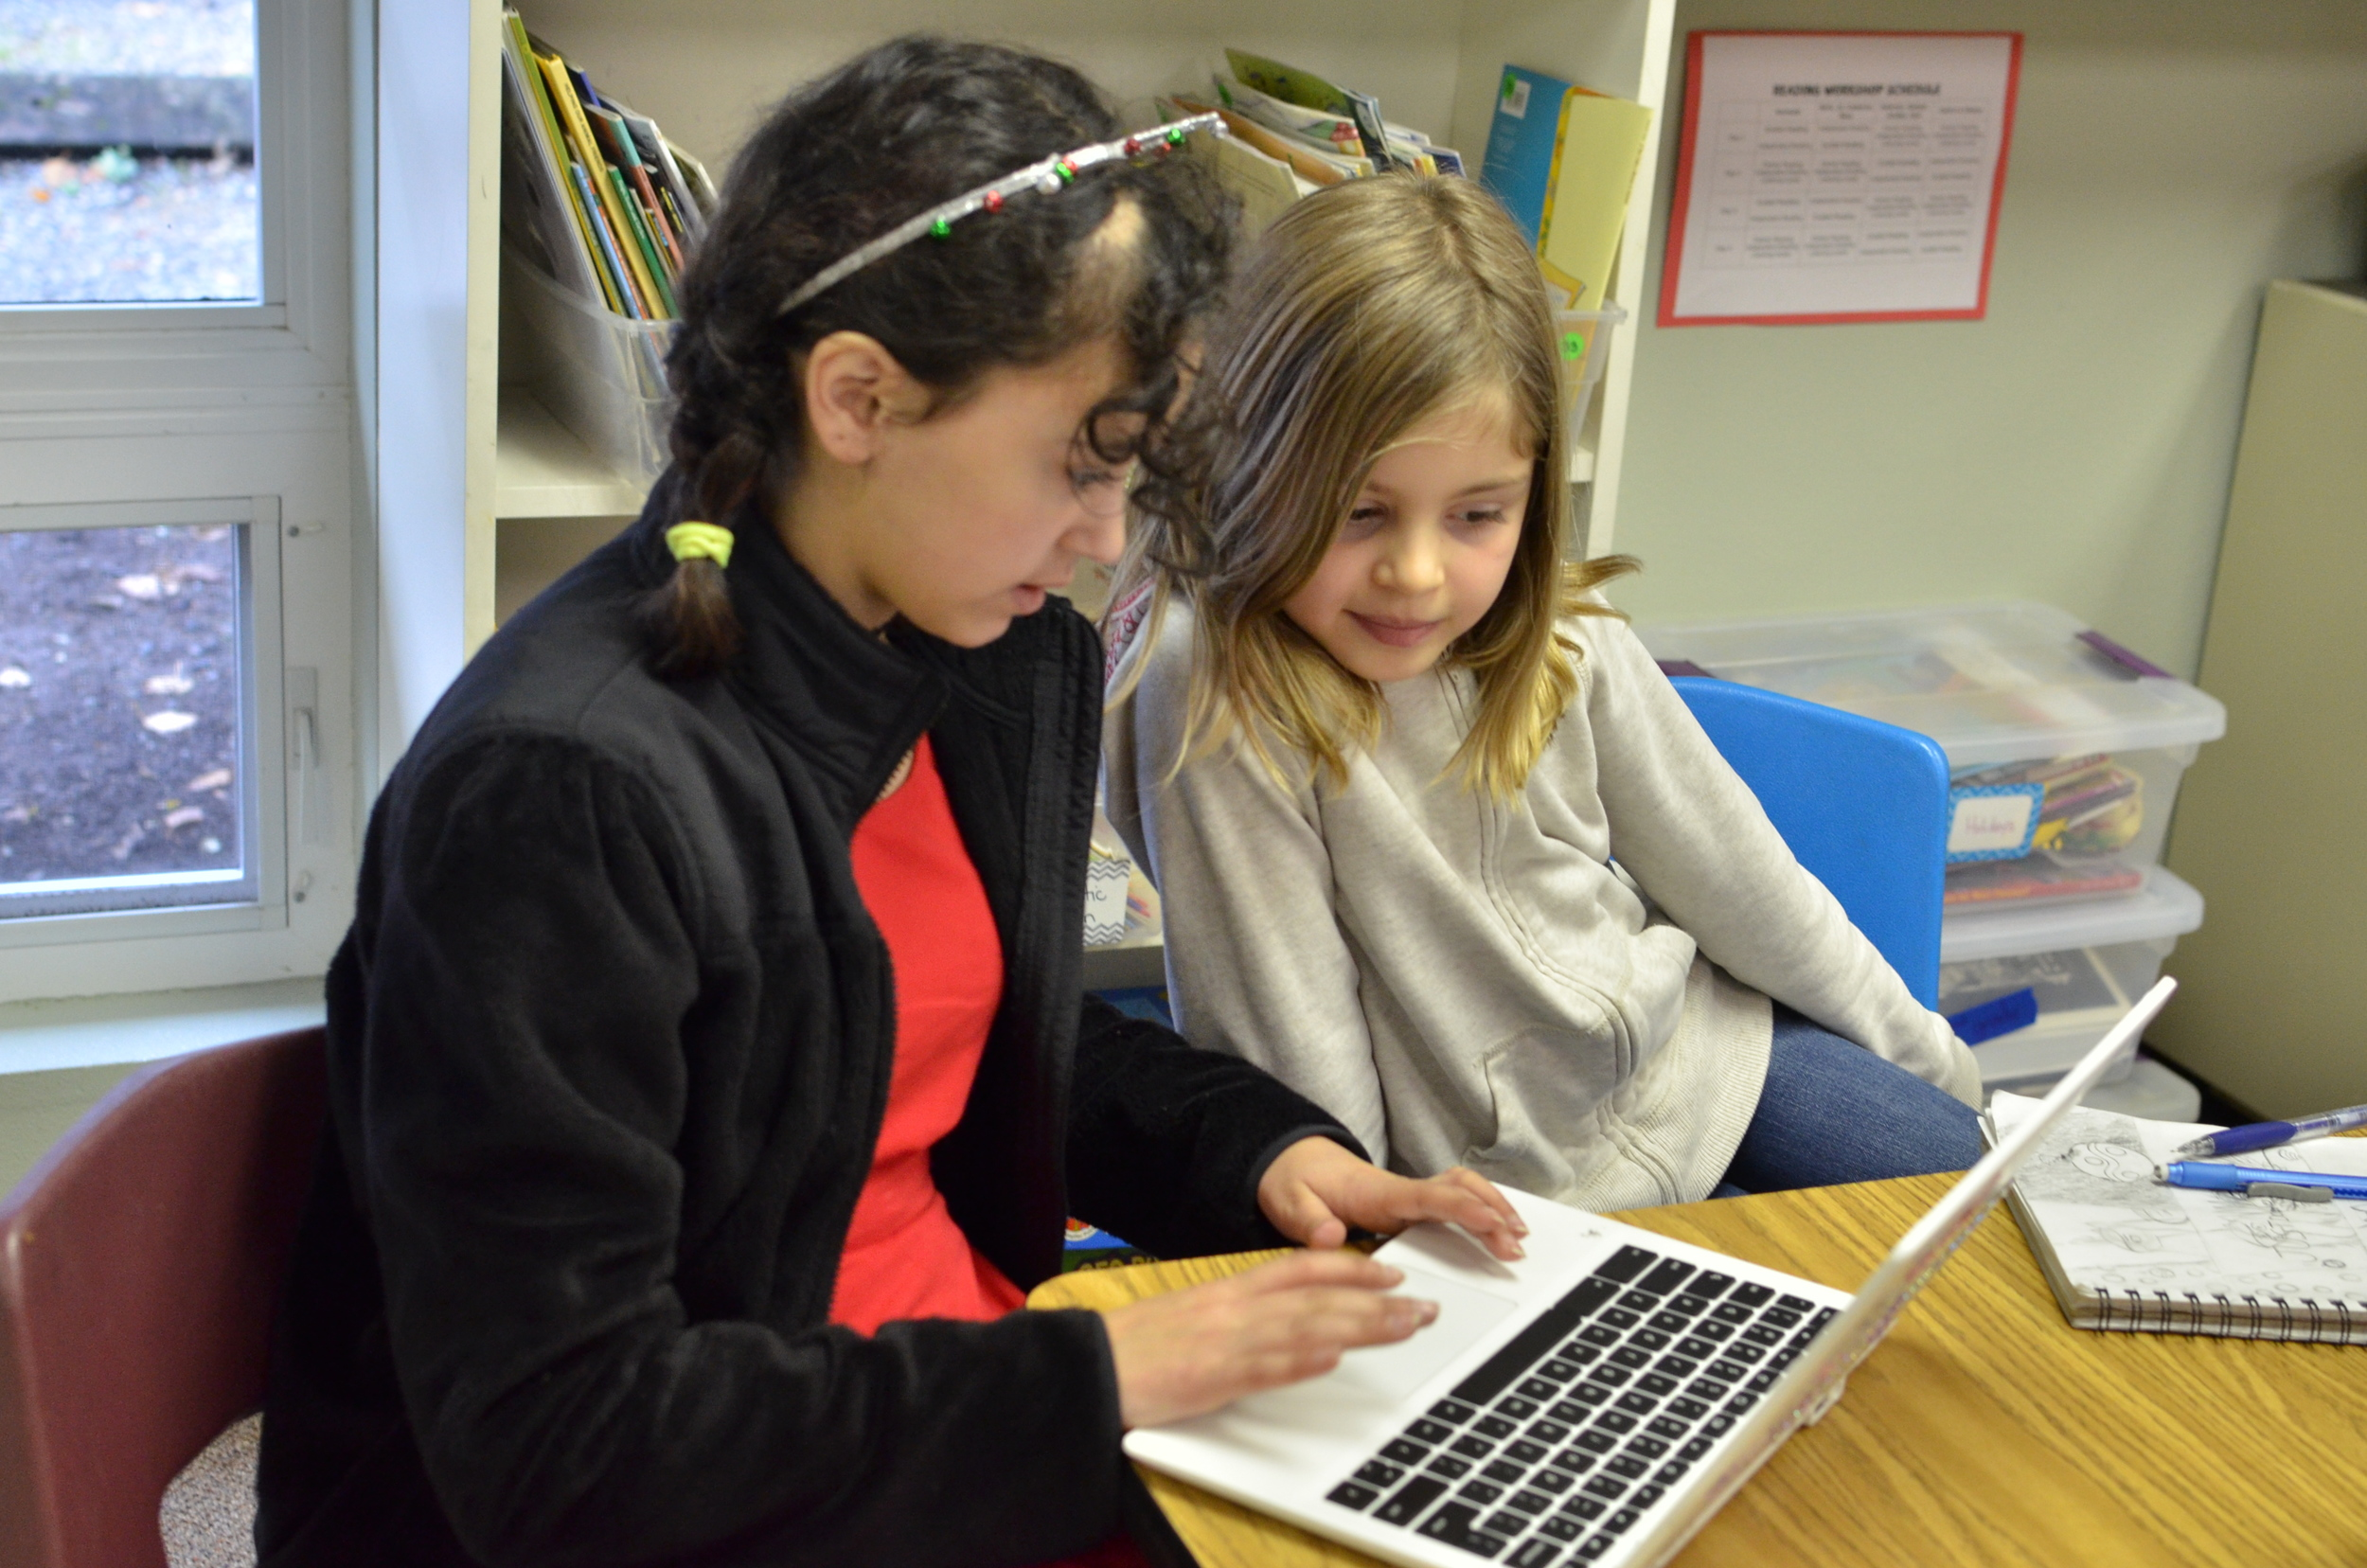 Students learn the language of code and how to communicate in digital environments.